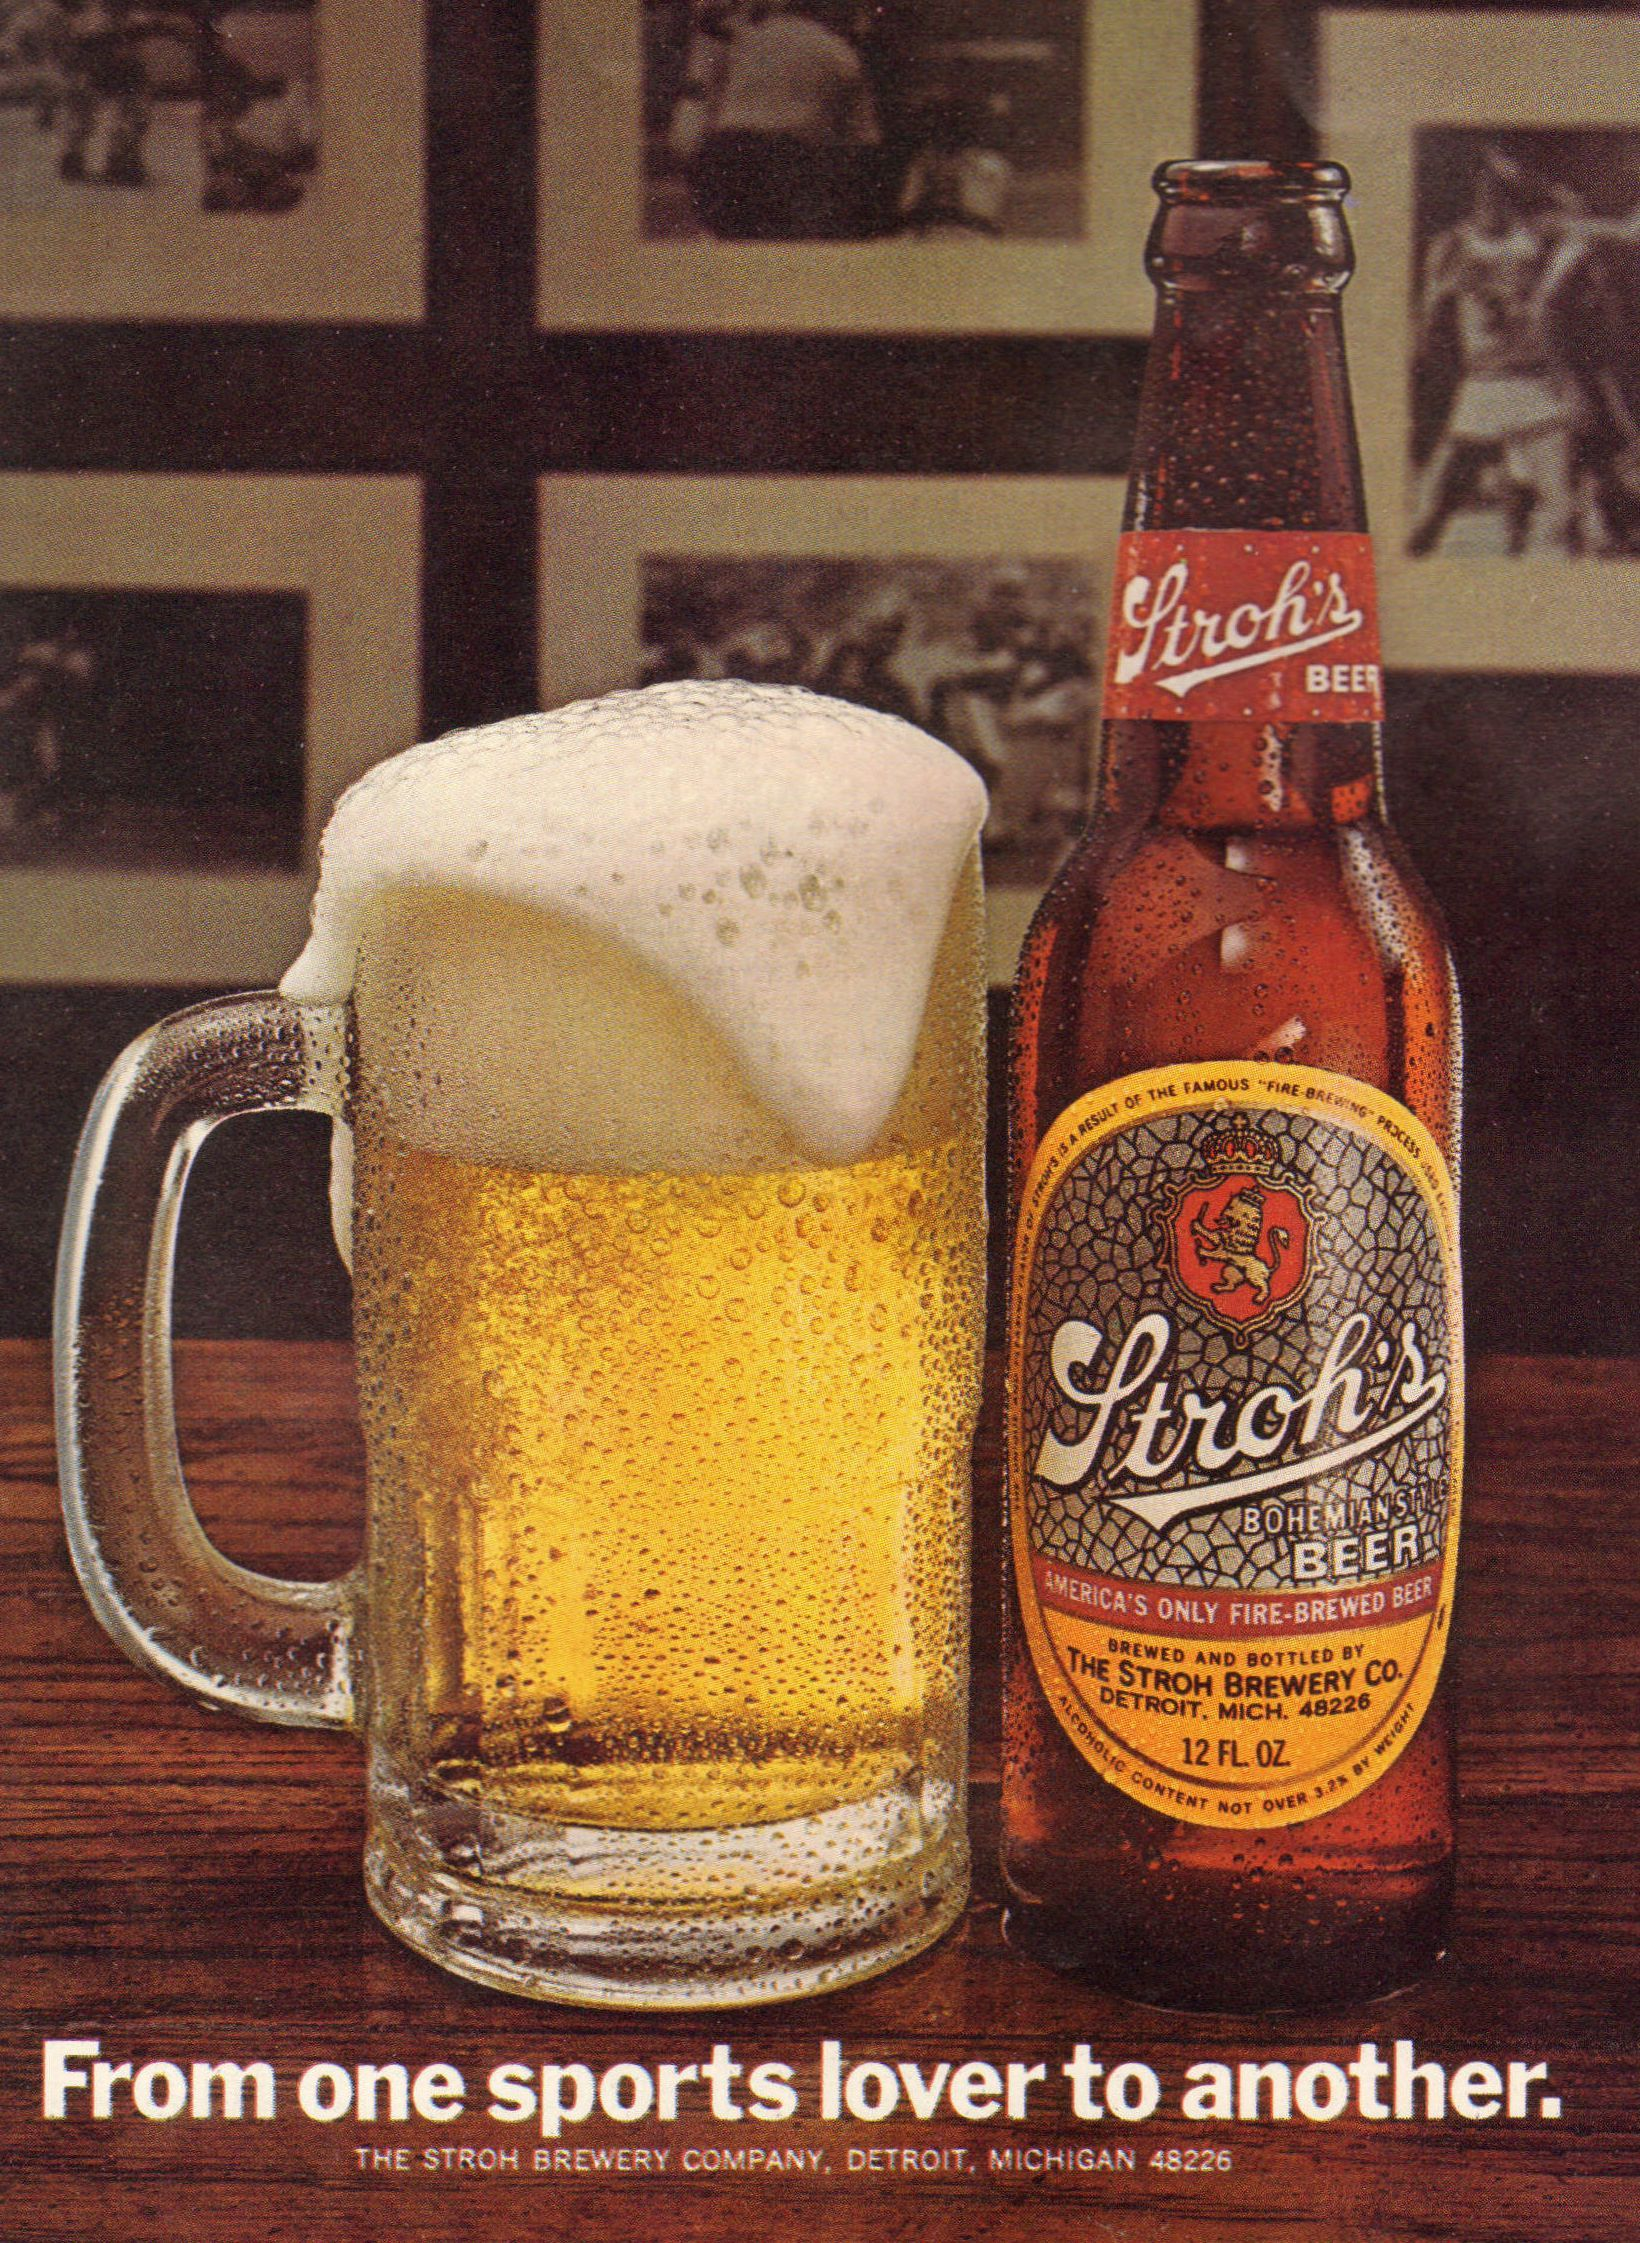 The Stroh Brewery Company Was A Beer Brewery Located In Detroit